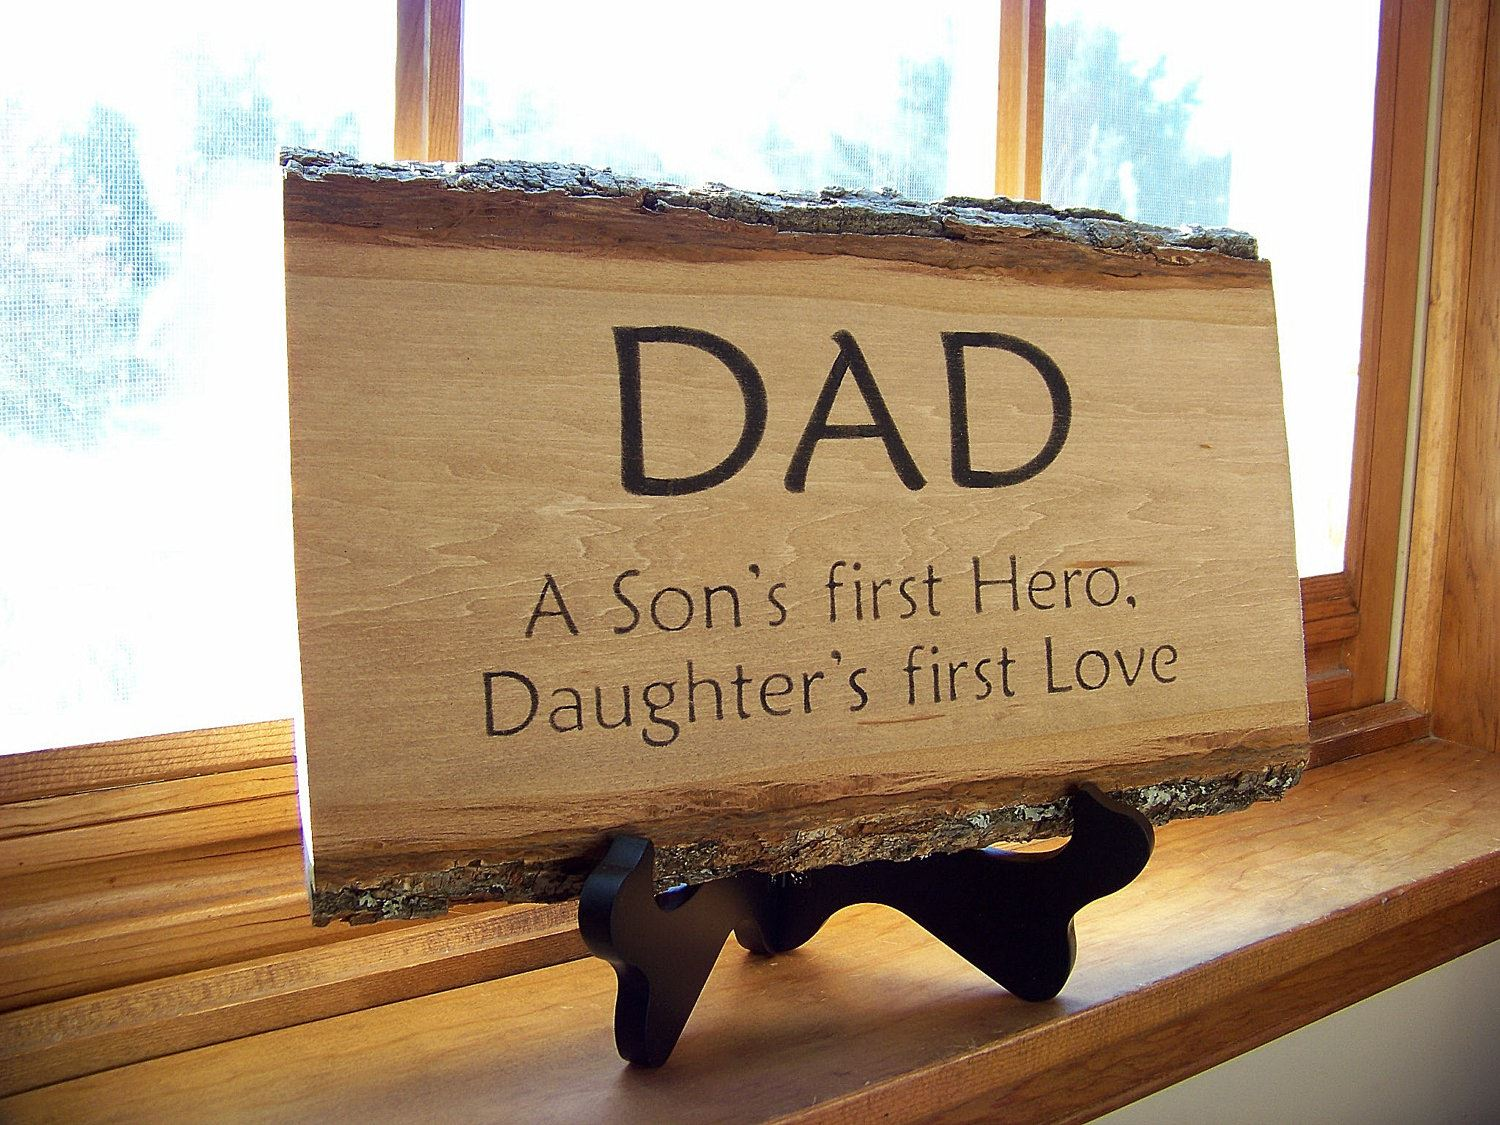 Yoddler - Dad - A son's first hero, daughter's first love